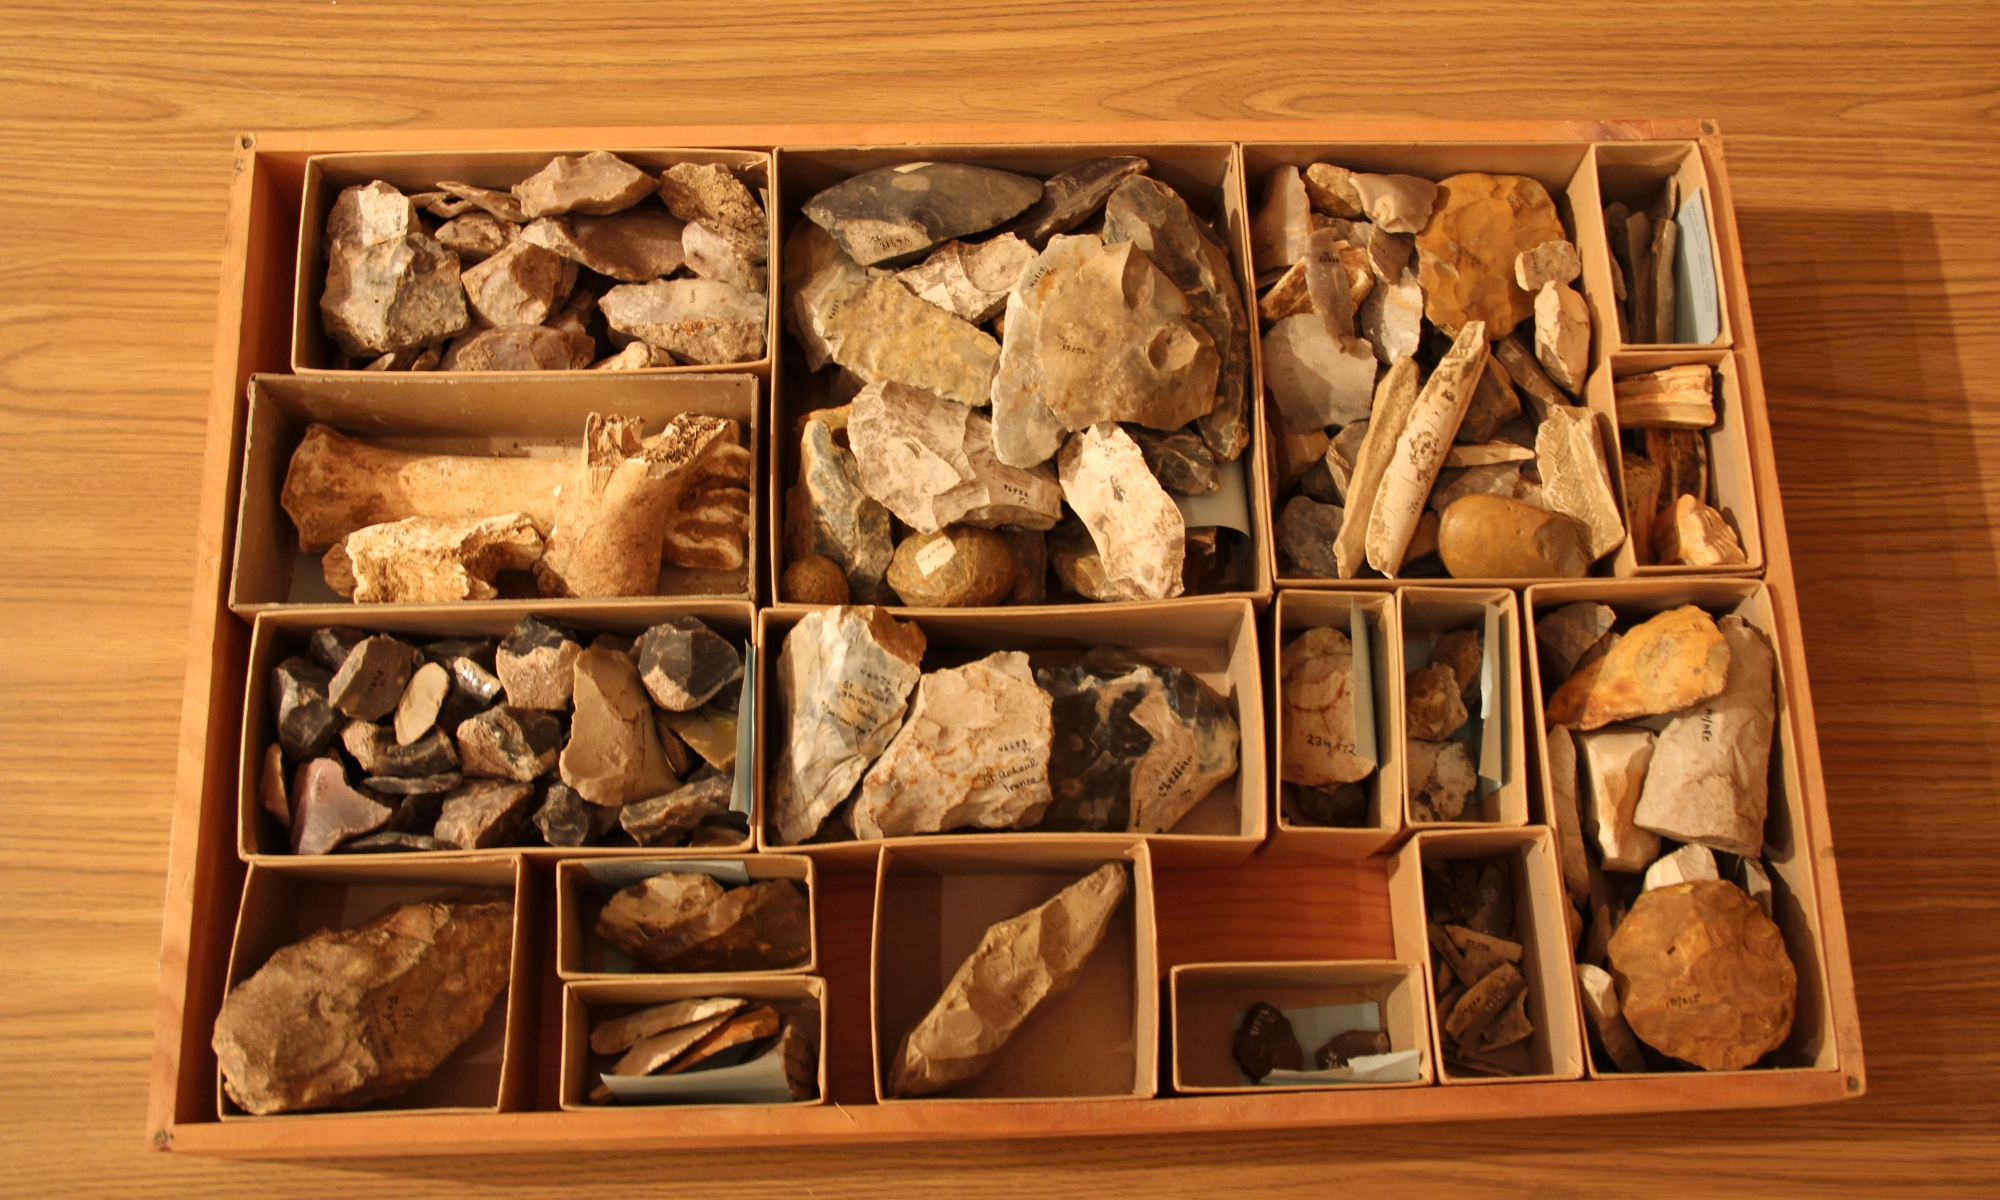 The drawer before cataloging